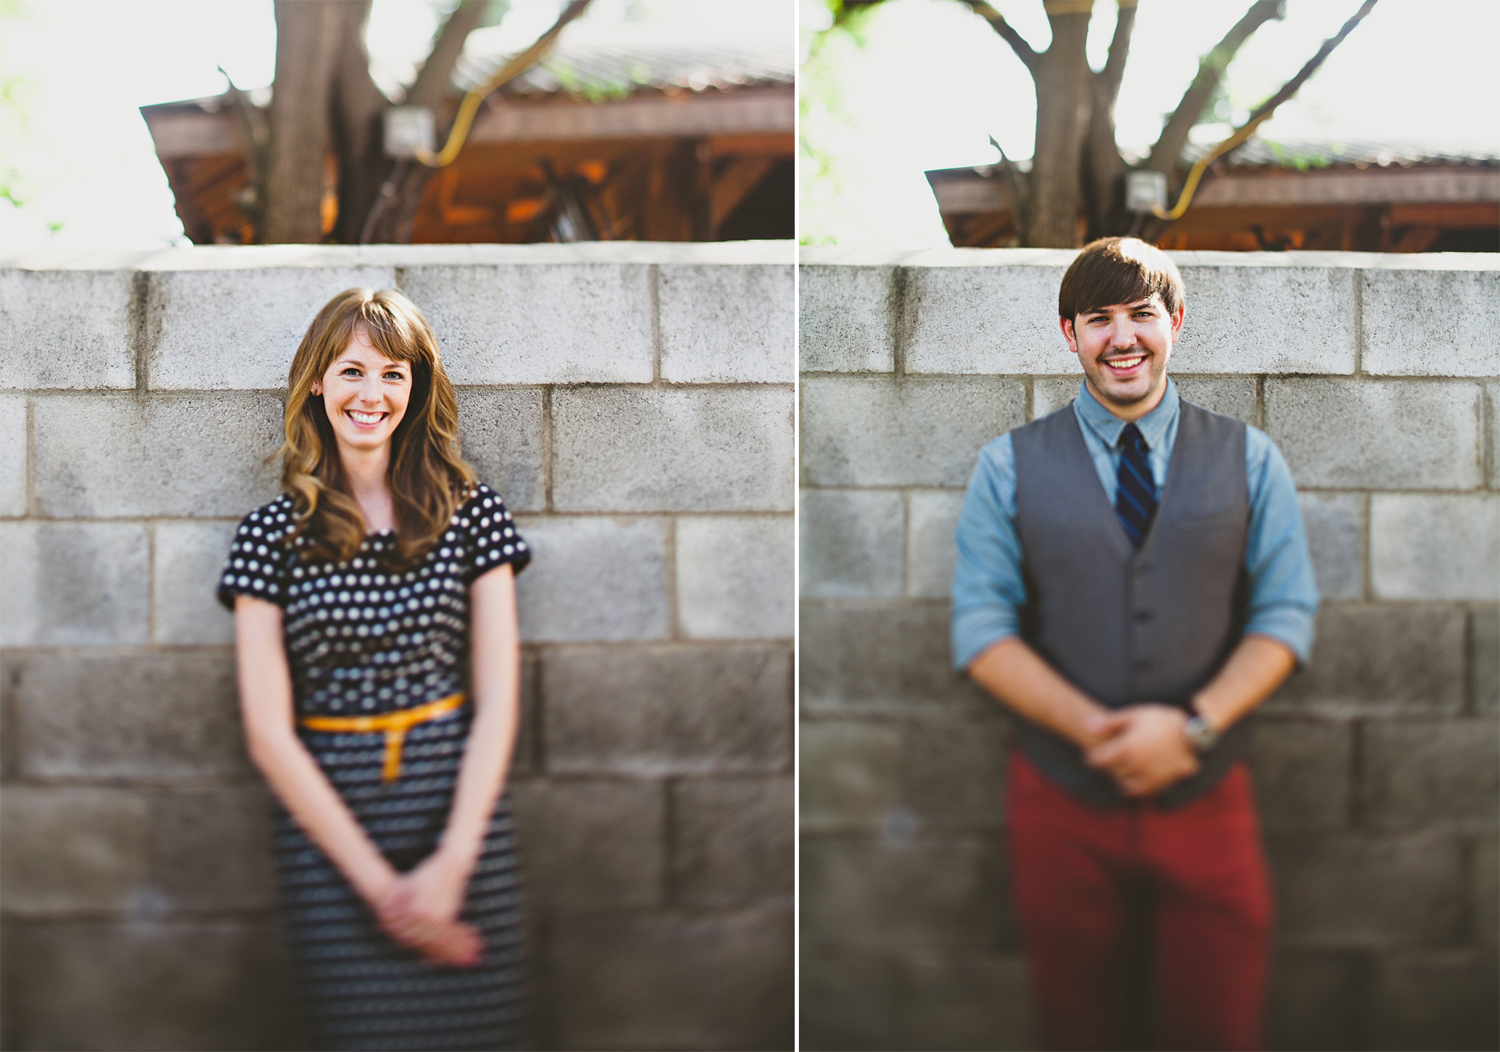 EmilyChidesterPhotography_Jena&Josh_Charlotte_NorthDavidson_Engagement-68 copy